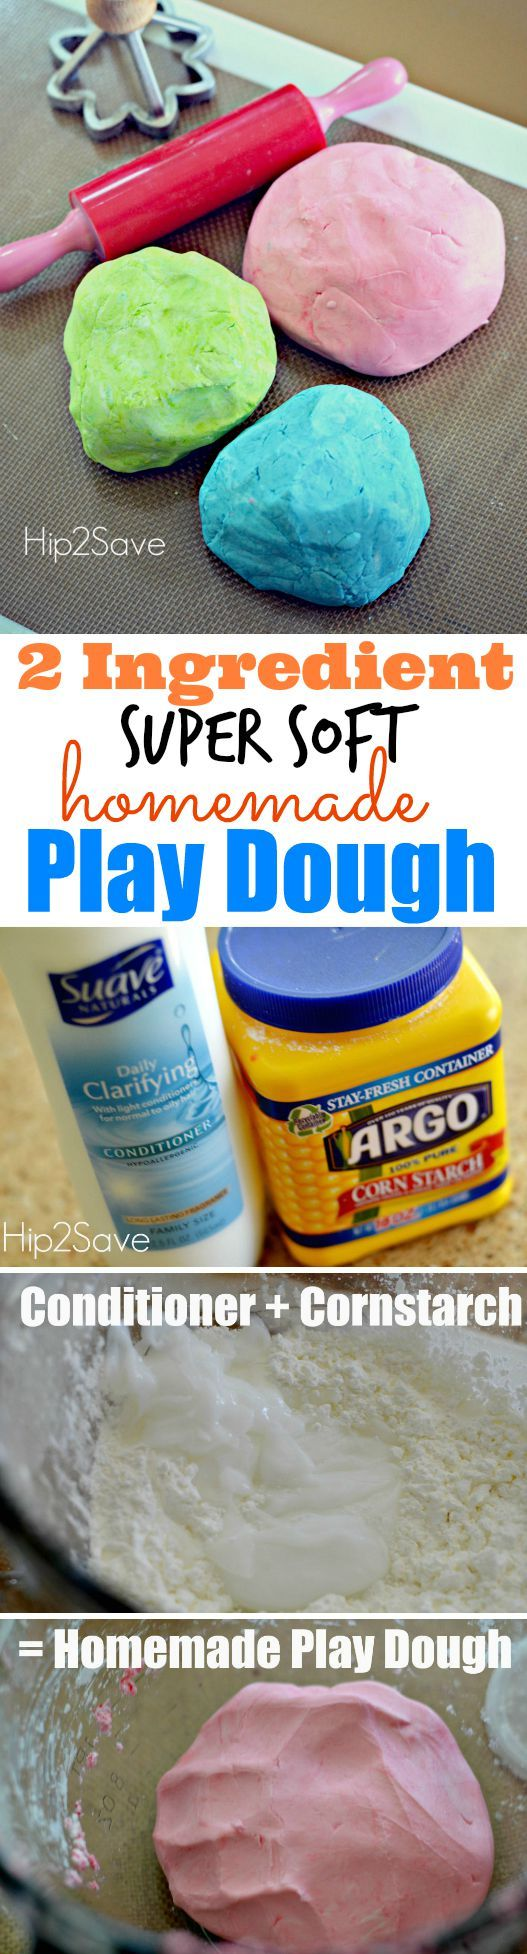 Homemade 2 Ingredient Play Dough – Hip2Save